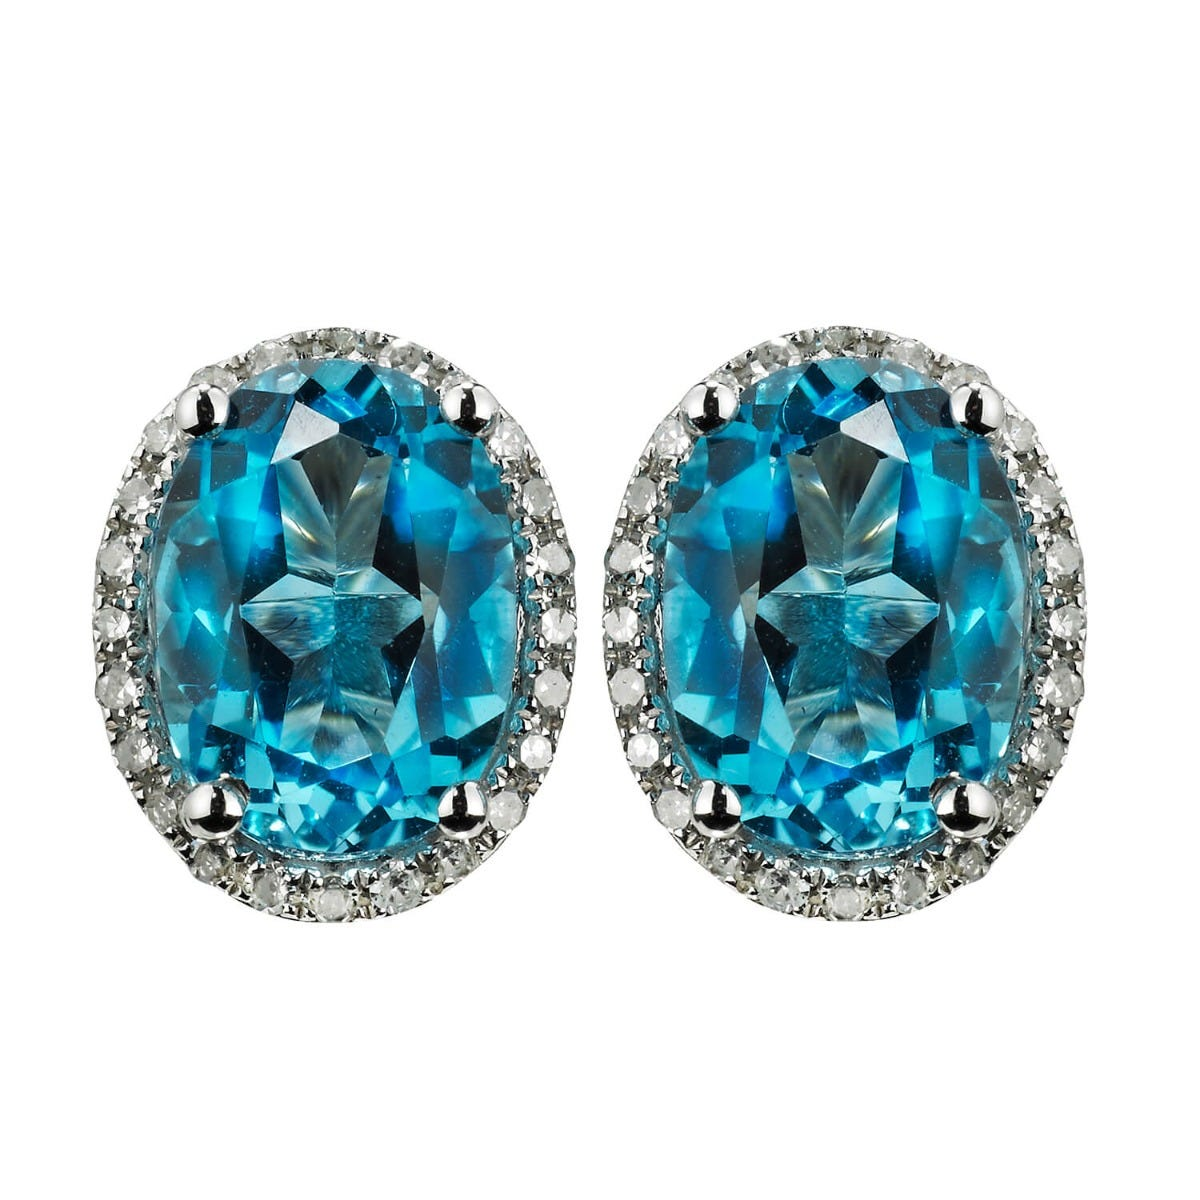 9ct white gold blue topaz and 0.18 carat diamond stud earrings